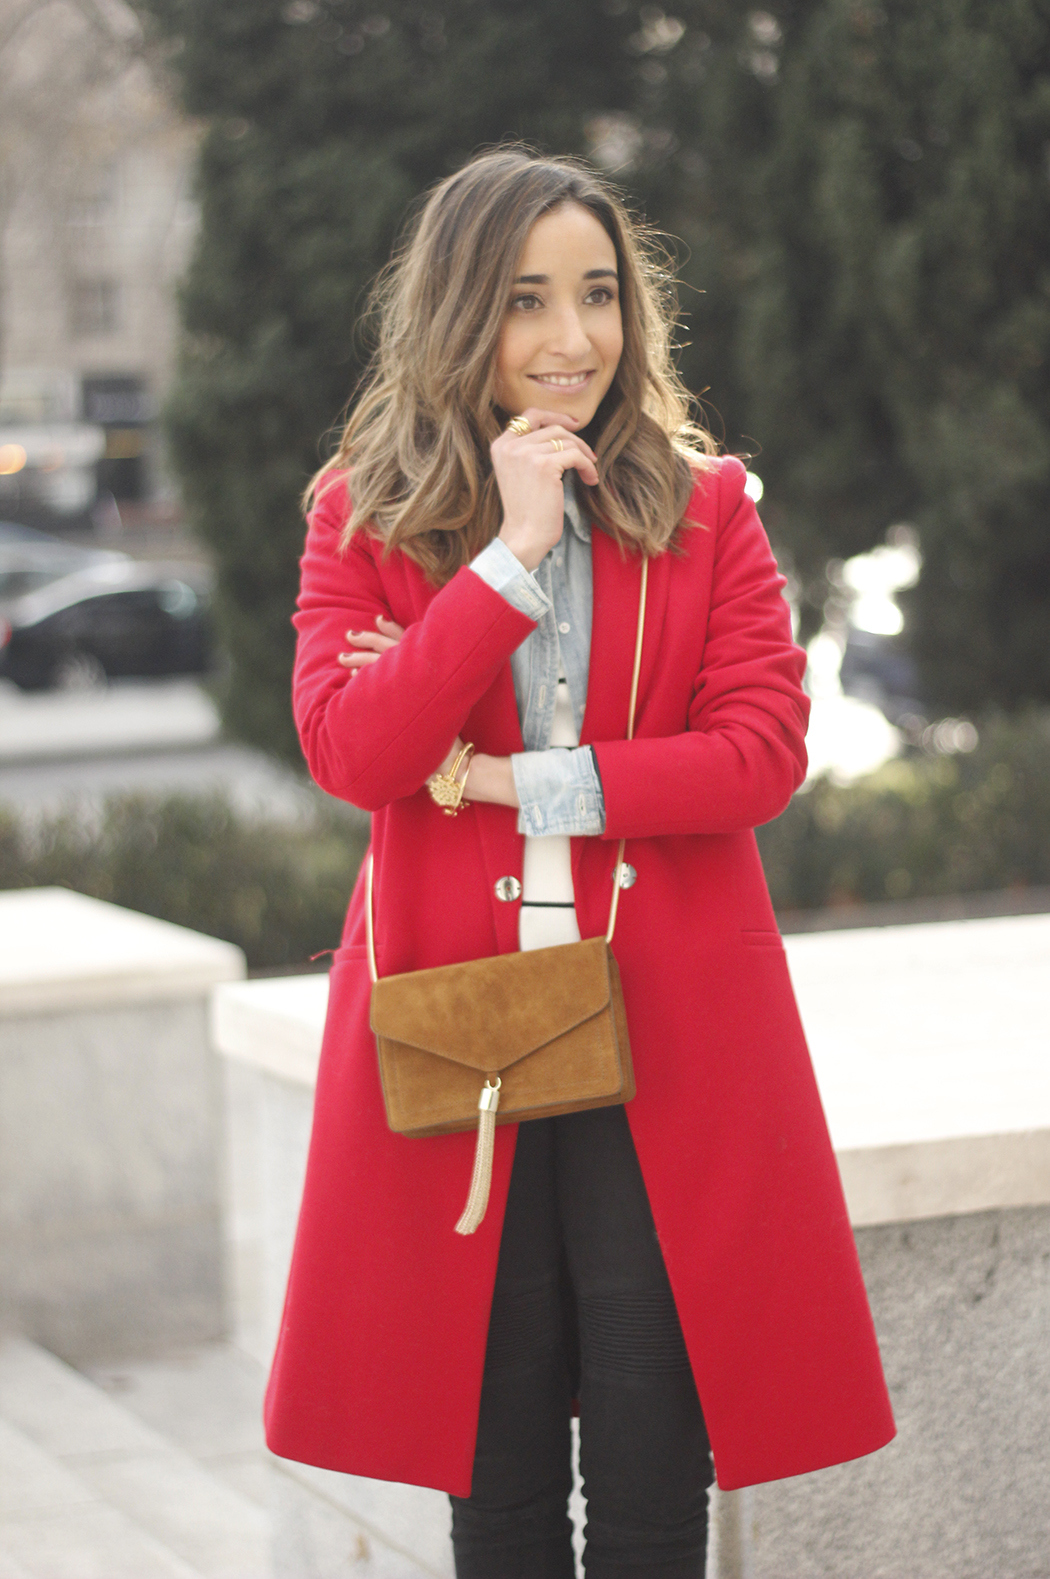 Red Coat Stripped sweater denim shirt nude heels outfit style uterqüe bag10